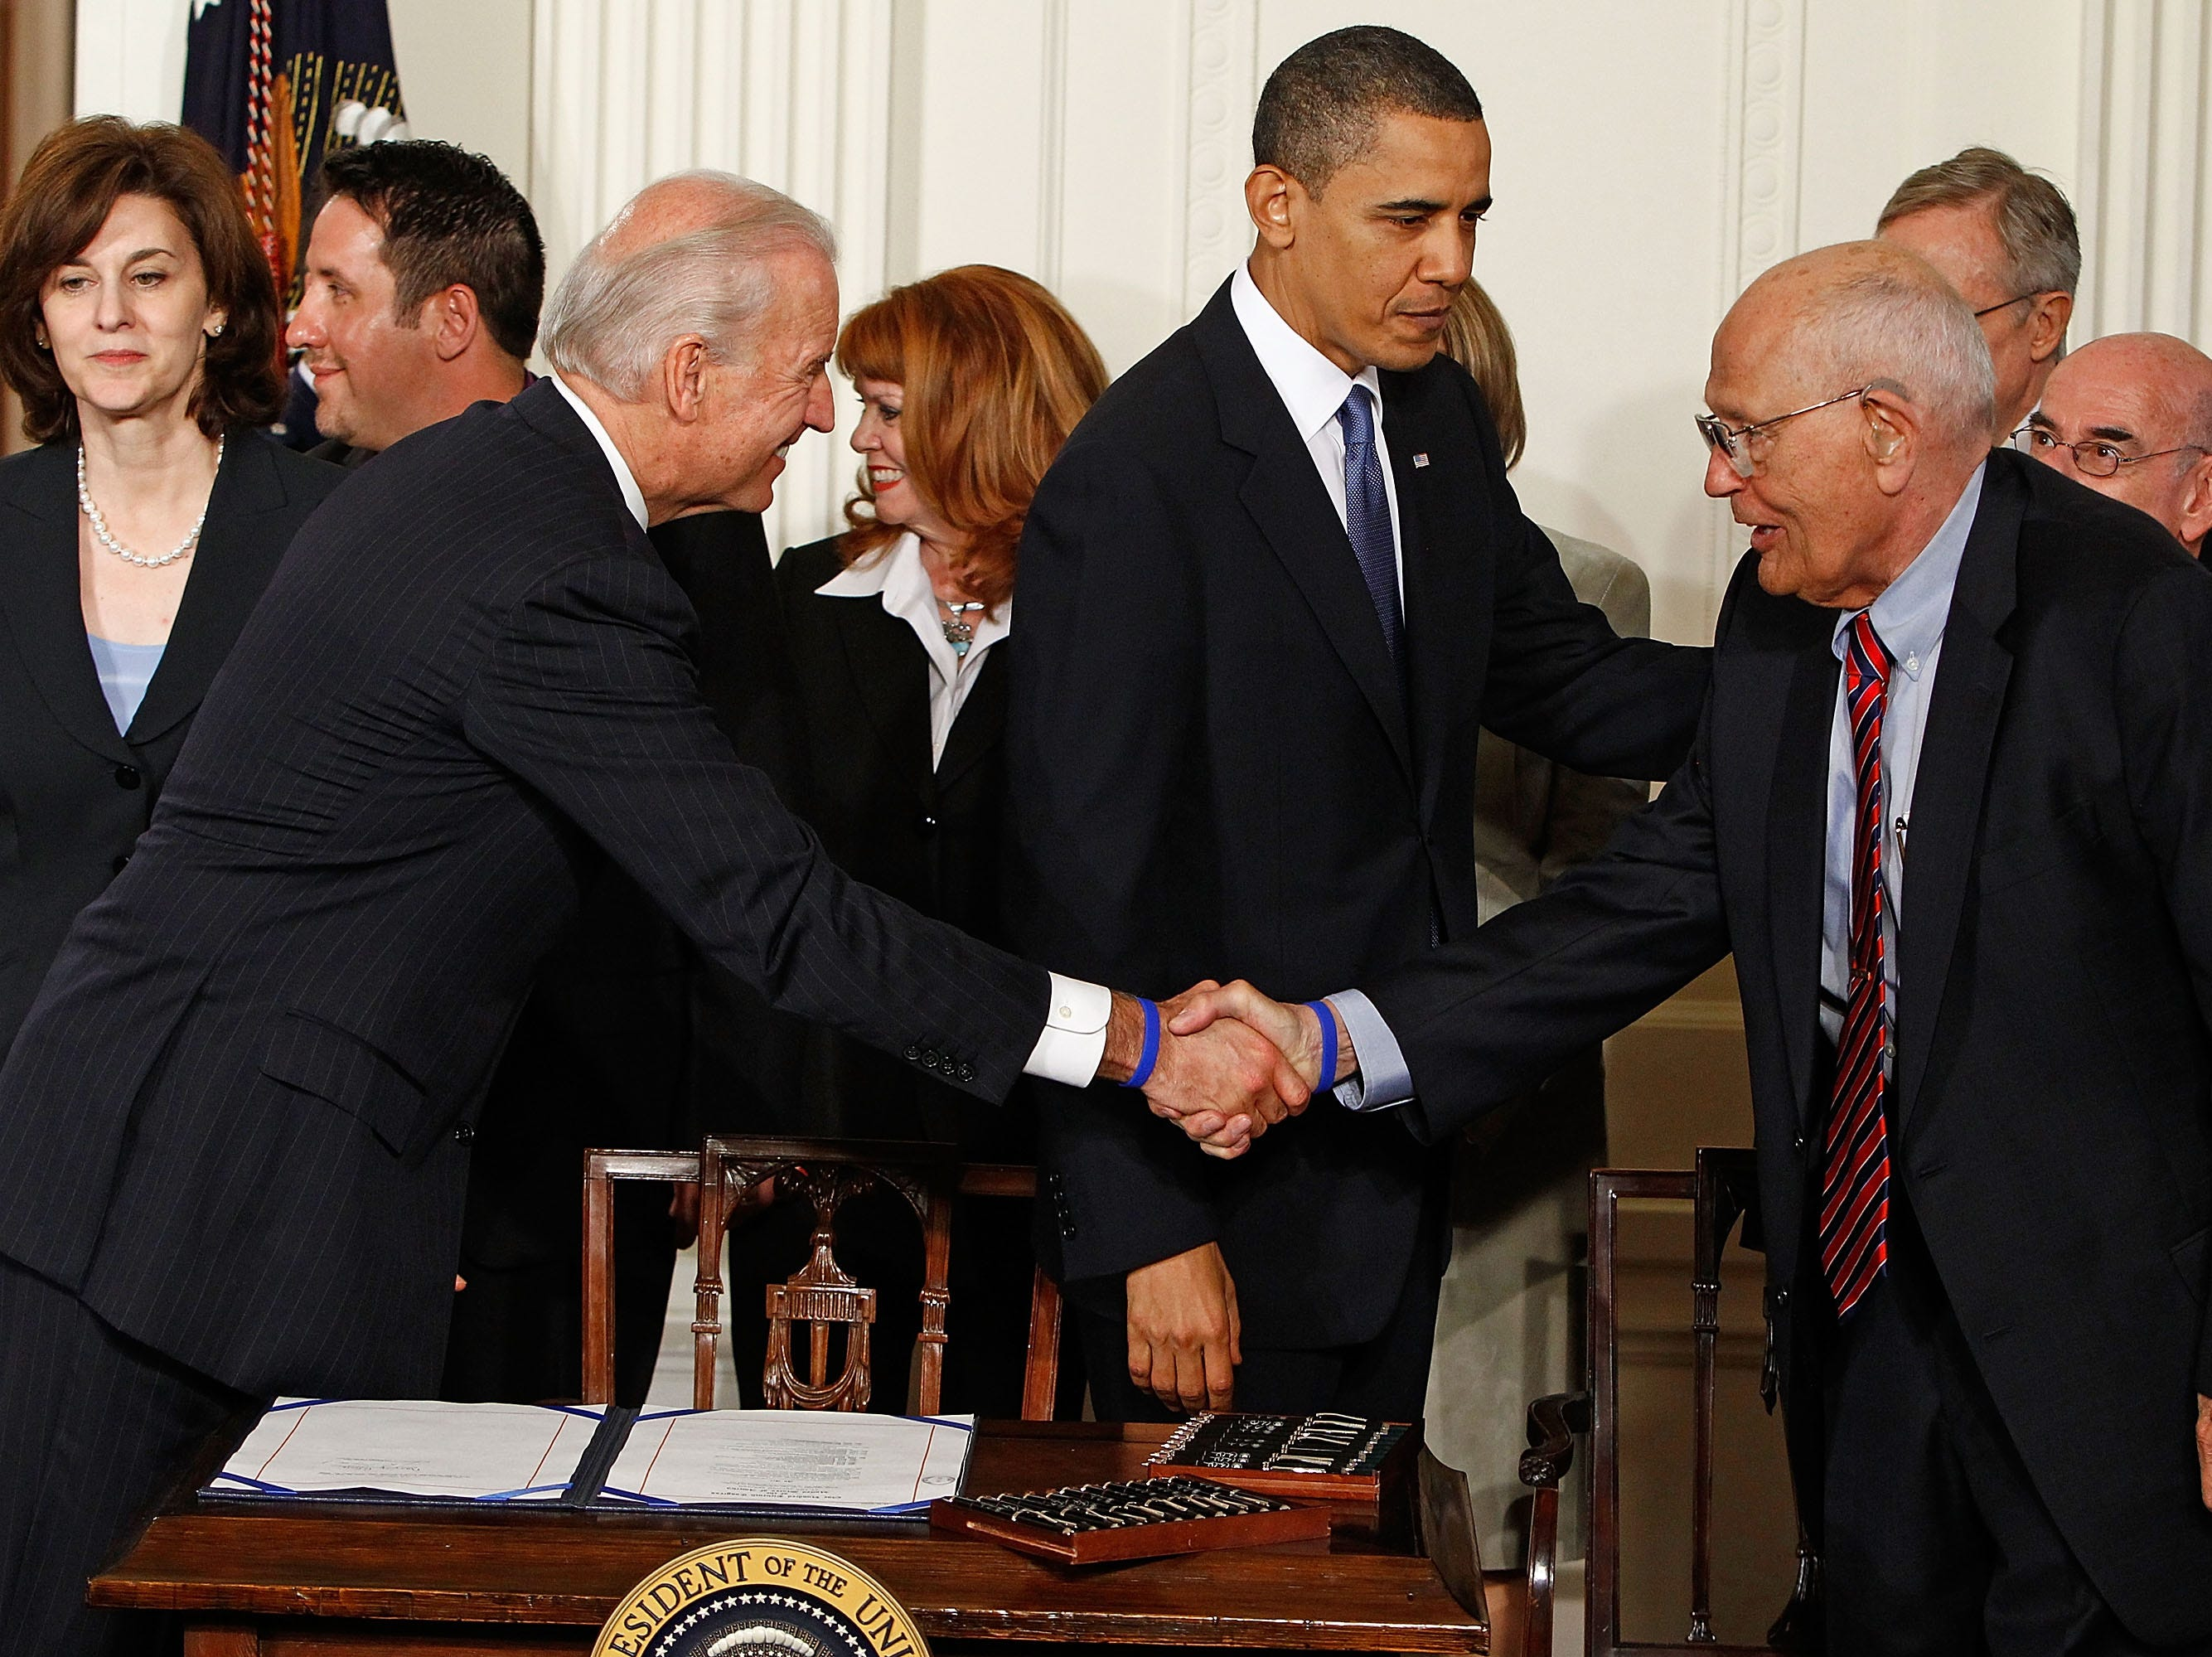 Vice President Joe Biden and President Barack Obama shake hands with Dingell before Obama signs the Affordable Health Care for America Act during a ceremony in the White House March 23, 2010. Dingell had introduced national health insurance legislation for more than 50 years before he finally saw it become law.